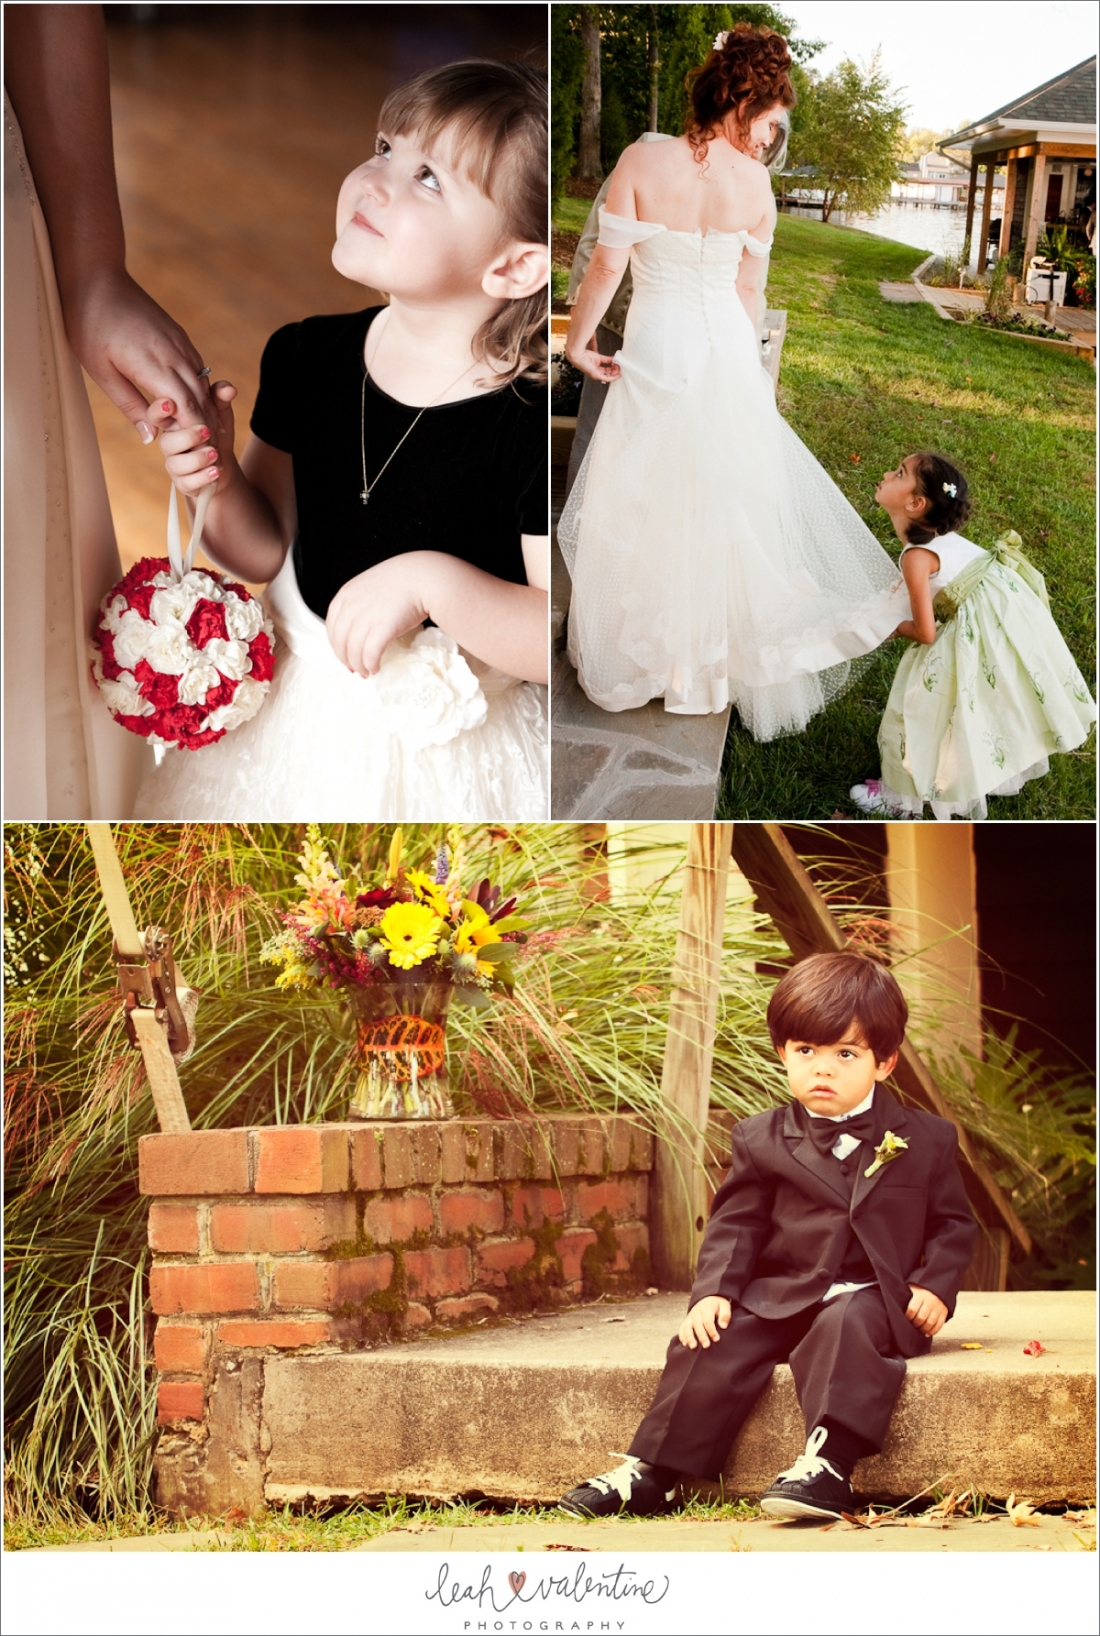 Flower girl and ring bearer portraits featured on SnapKnot